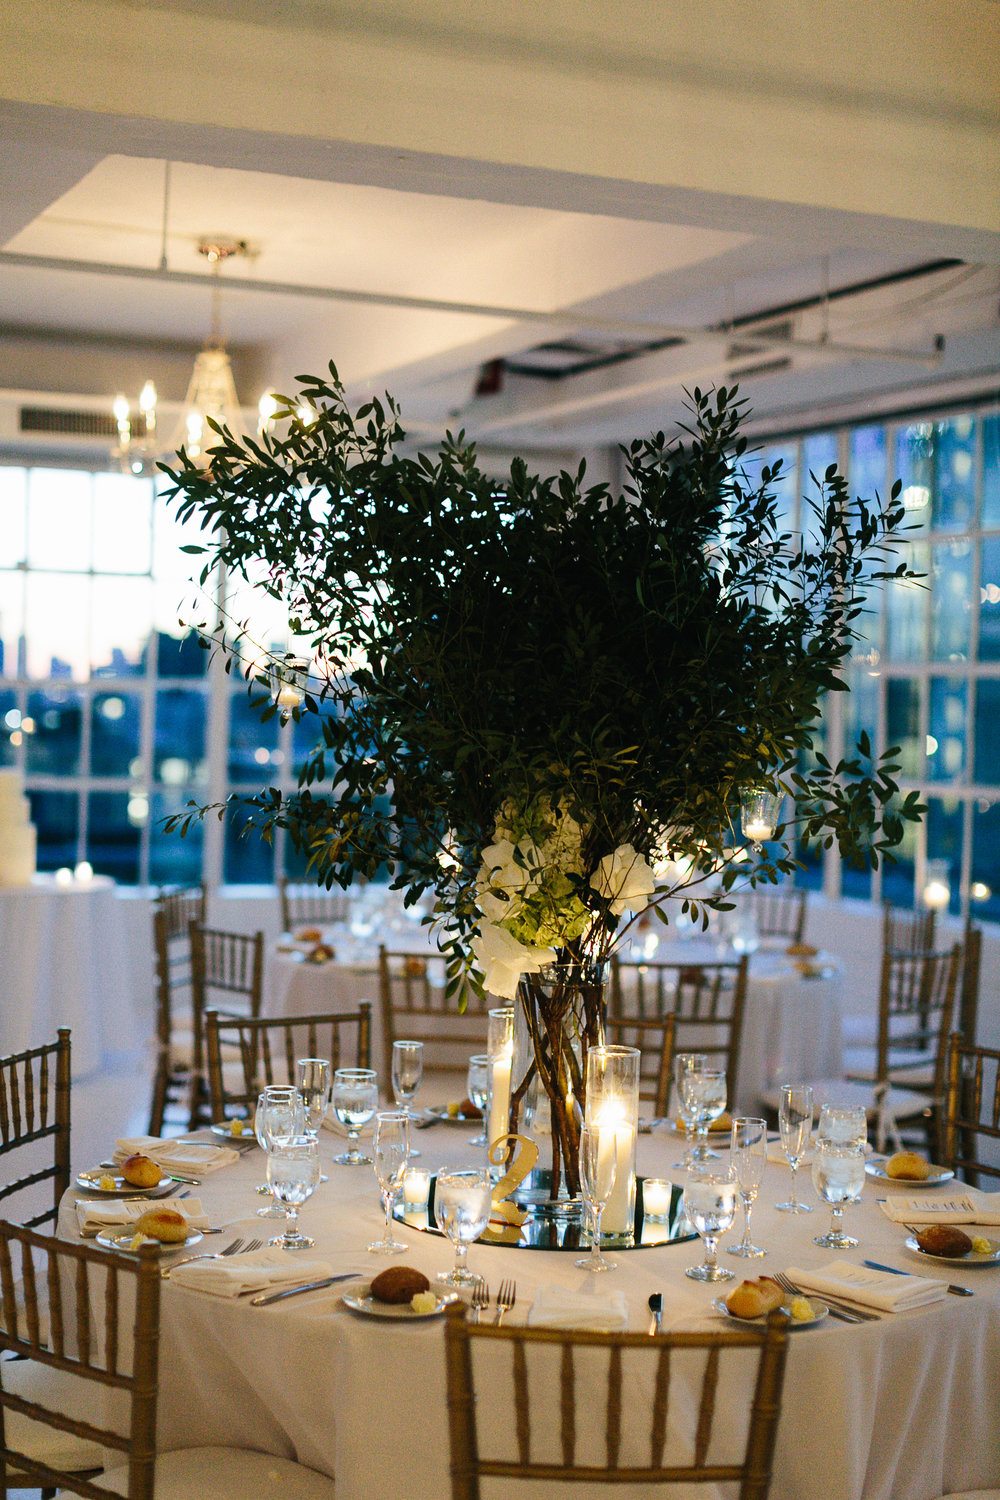 Studio 450 Wedding, estilonyc.com